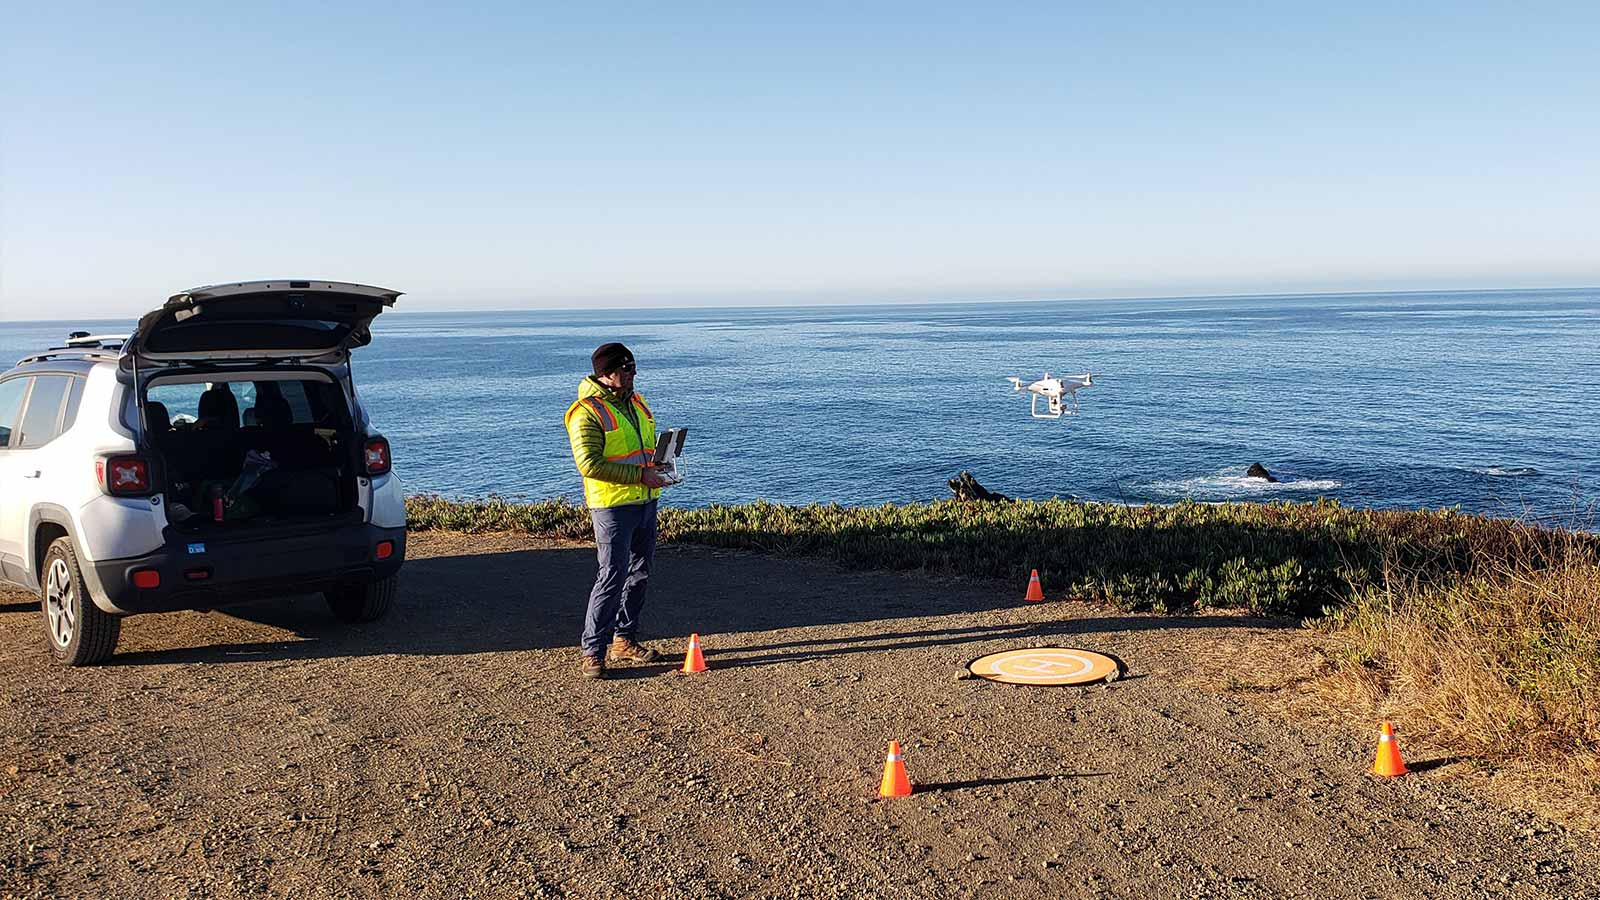 Flying-a-drone-off-hte-coast-of-california